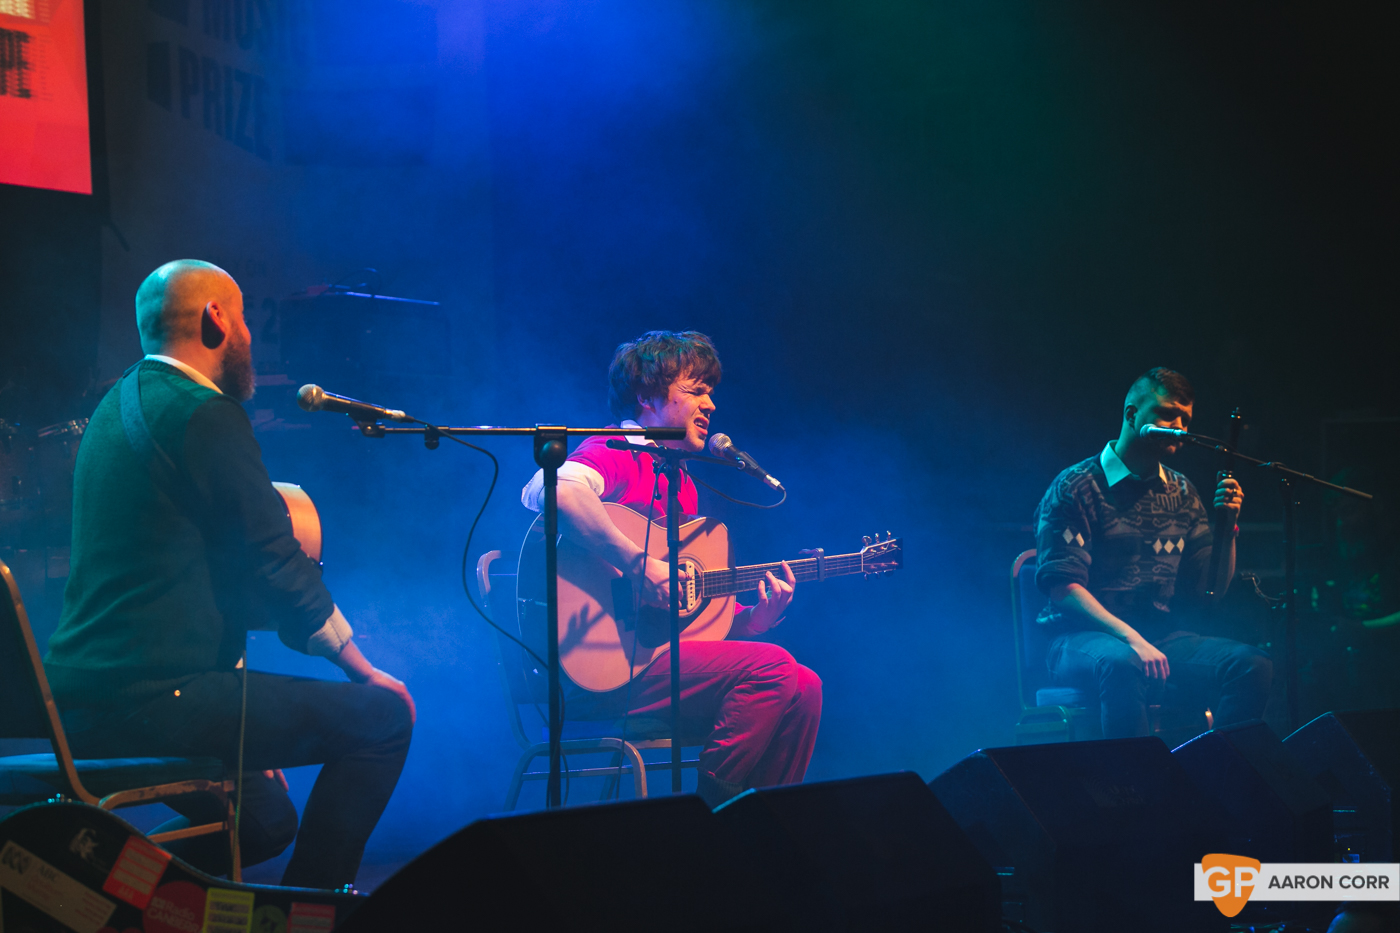 Junior Brother at Choice Music Prize 2020 in Vicar Street, Dublin on 05-Mar-20 by Aaron Corr-5057